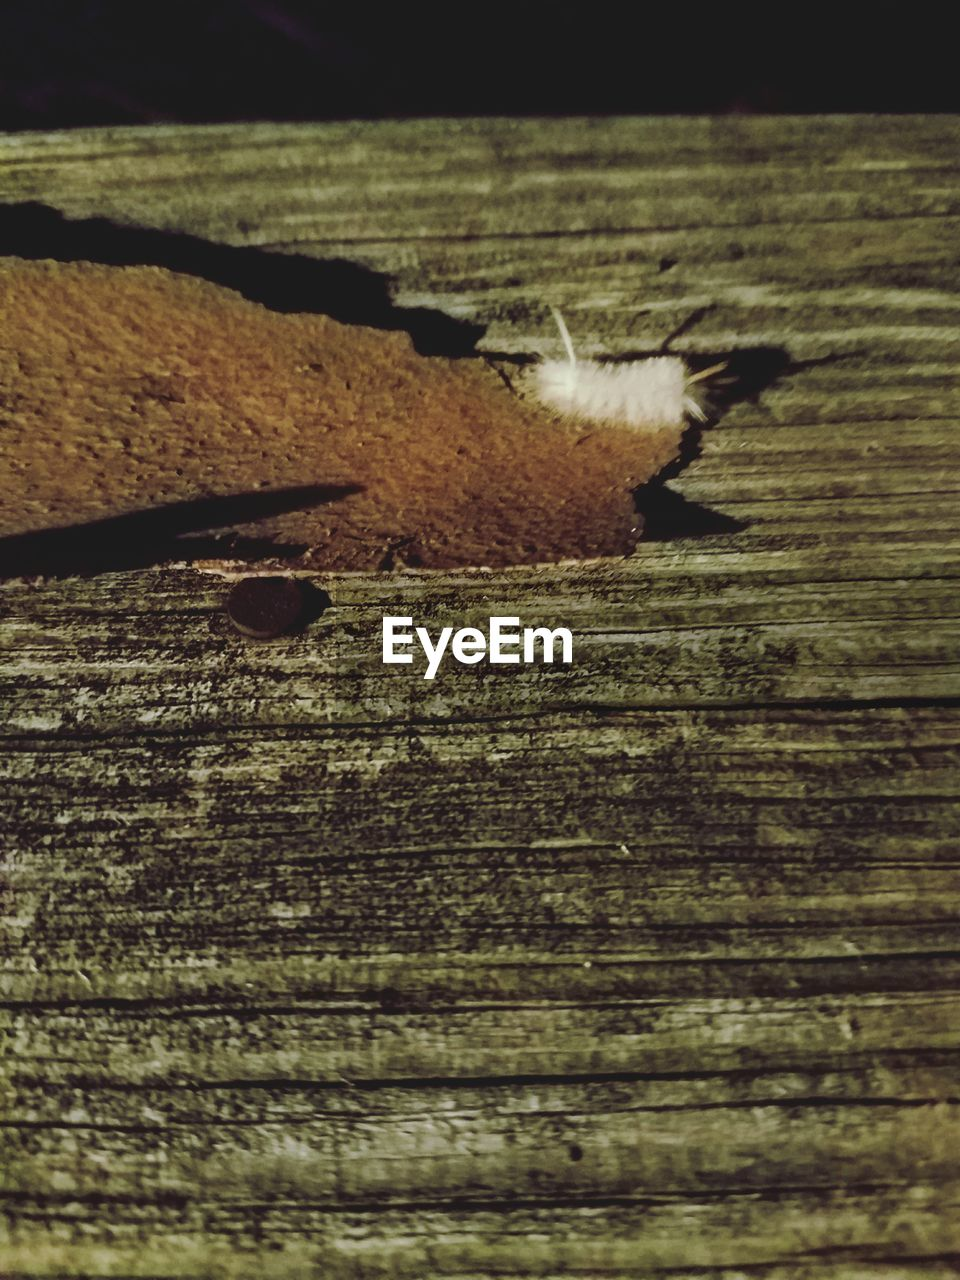 no people, textured, wood - material, outdoors, day, close-up, nature, beach, water, beauty in nature